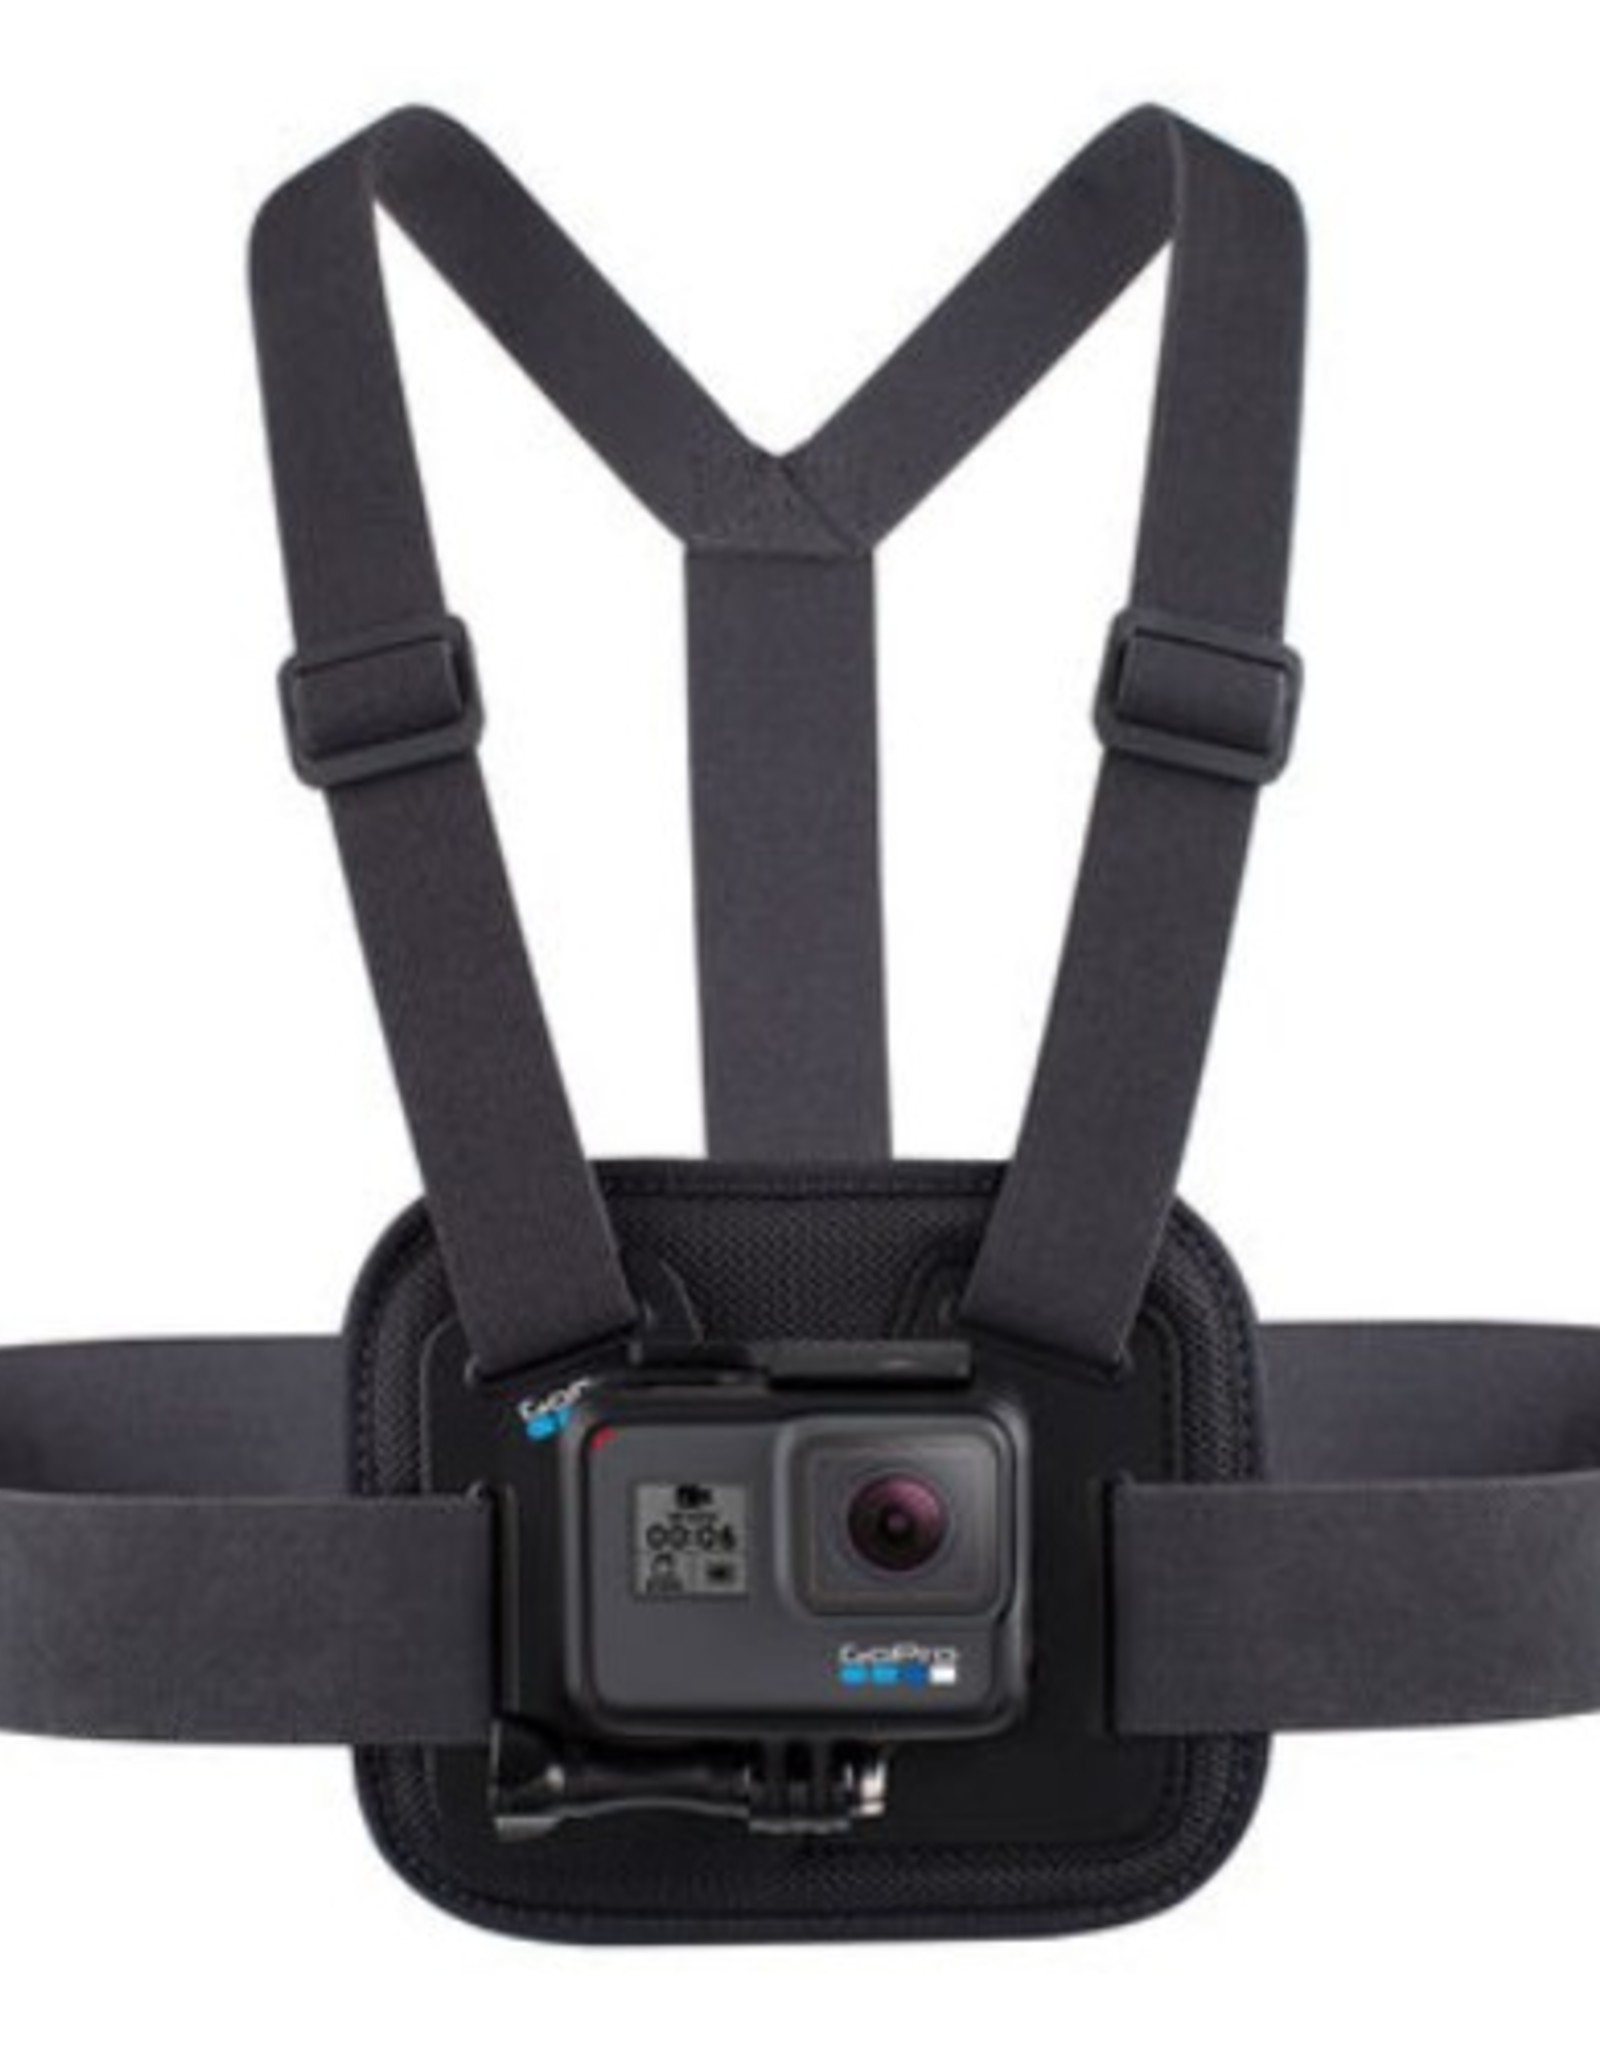 GoPro GoPro| Chesty (Performance Chest Mount) | GP-AGCHM-001